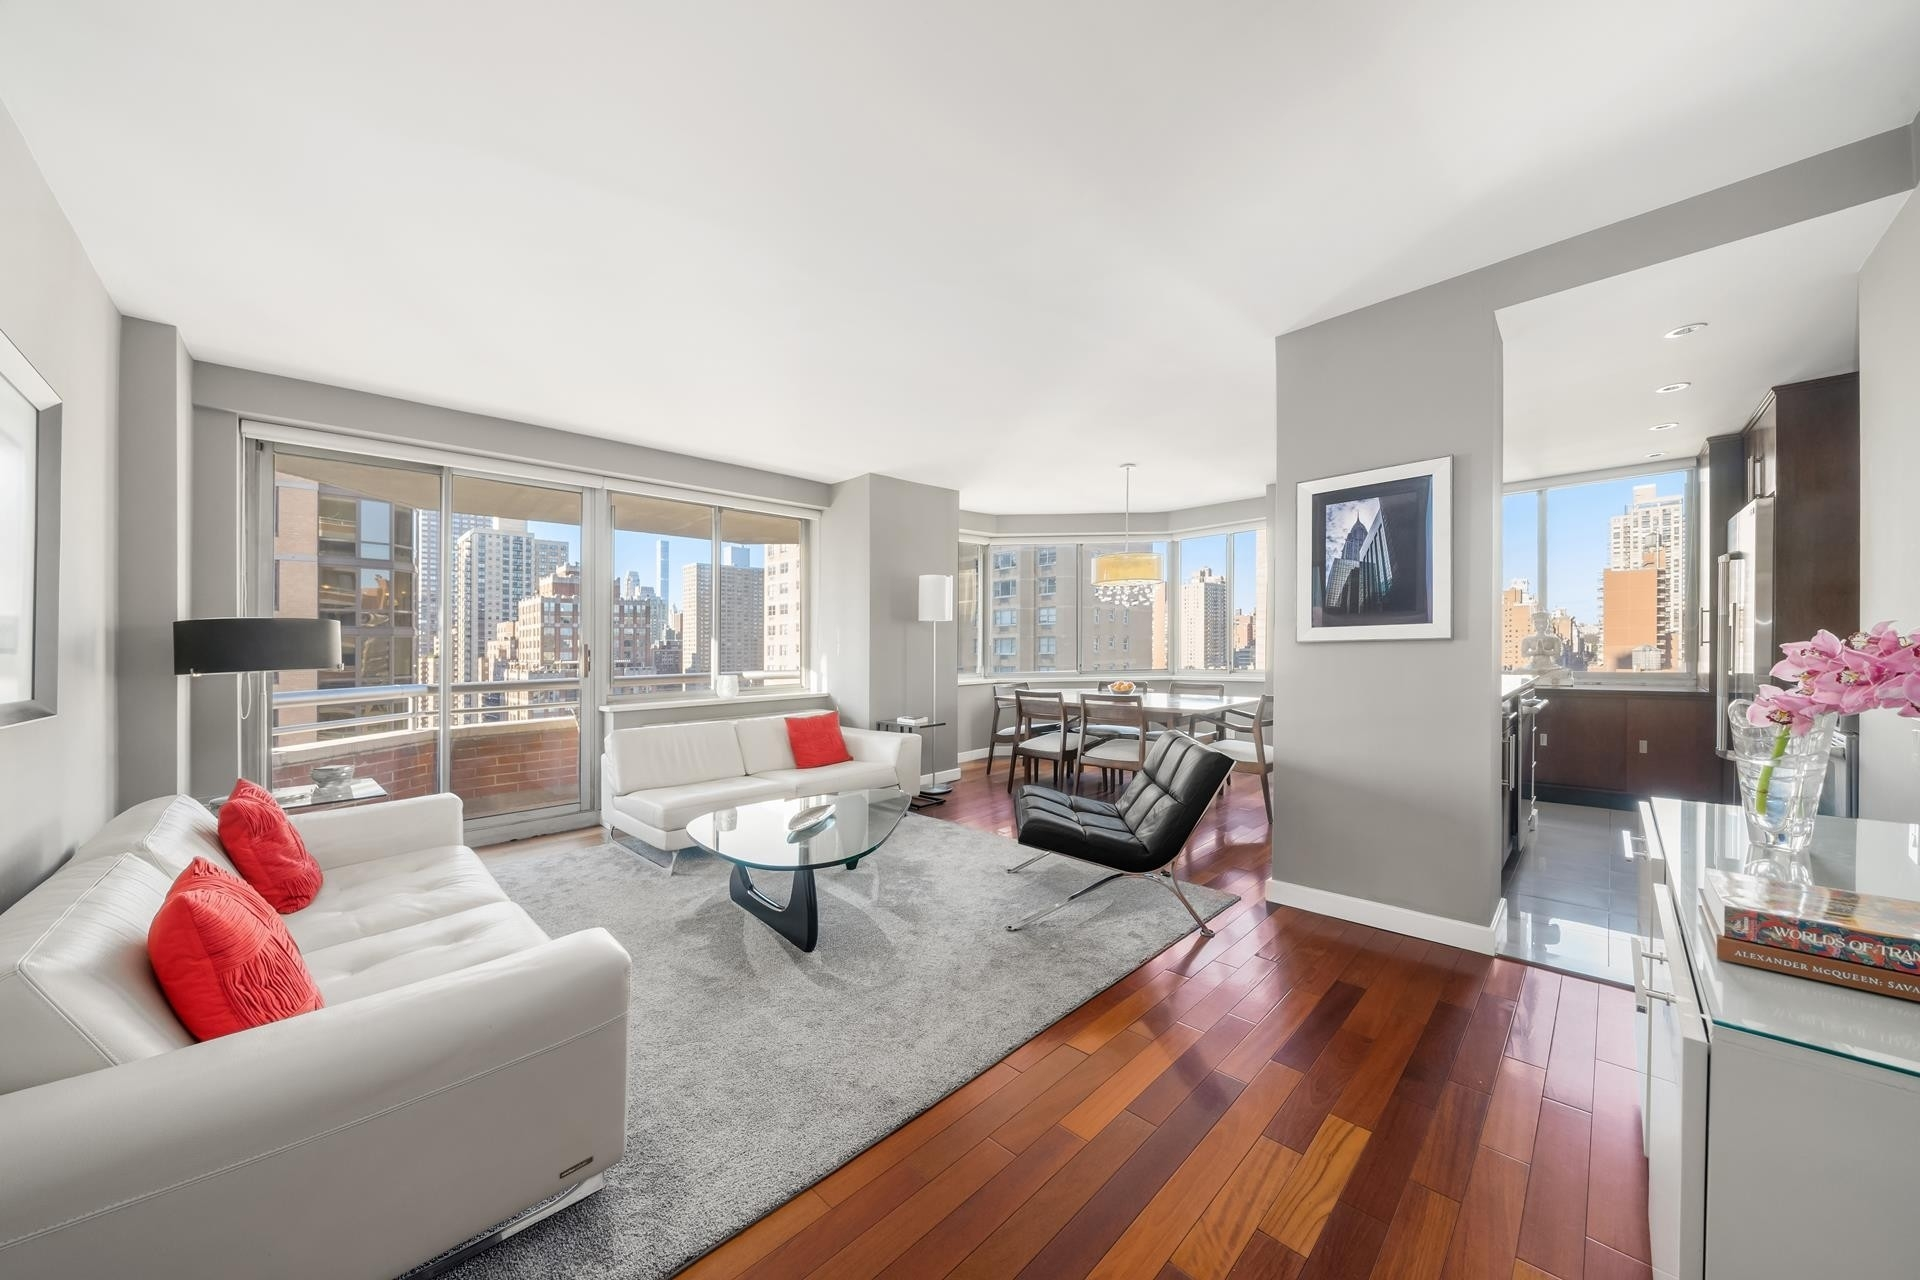 Condominium at THE DUNHILL, 401 East 84th St, 14C New York